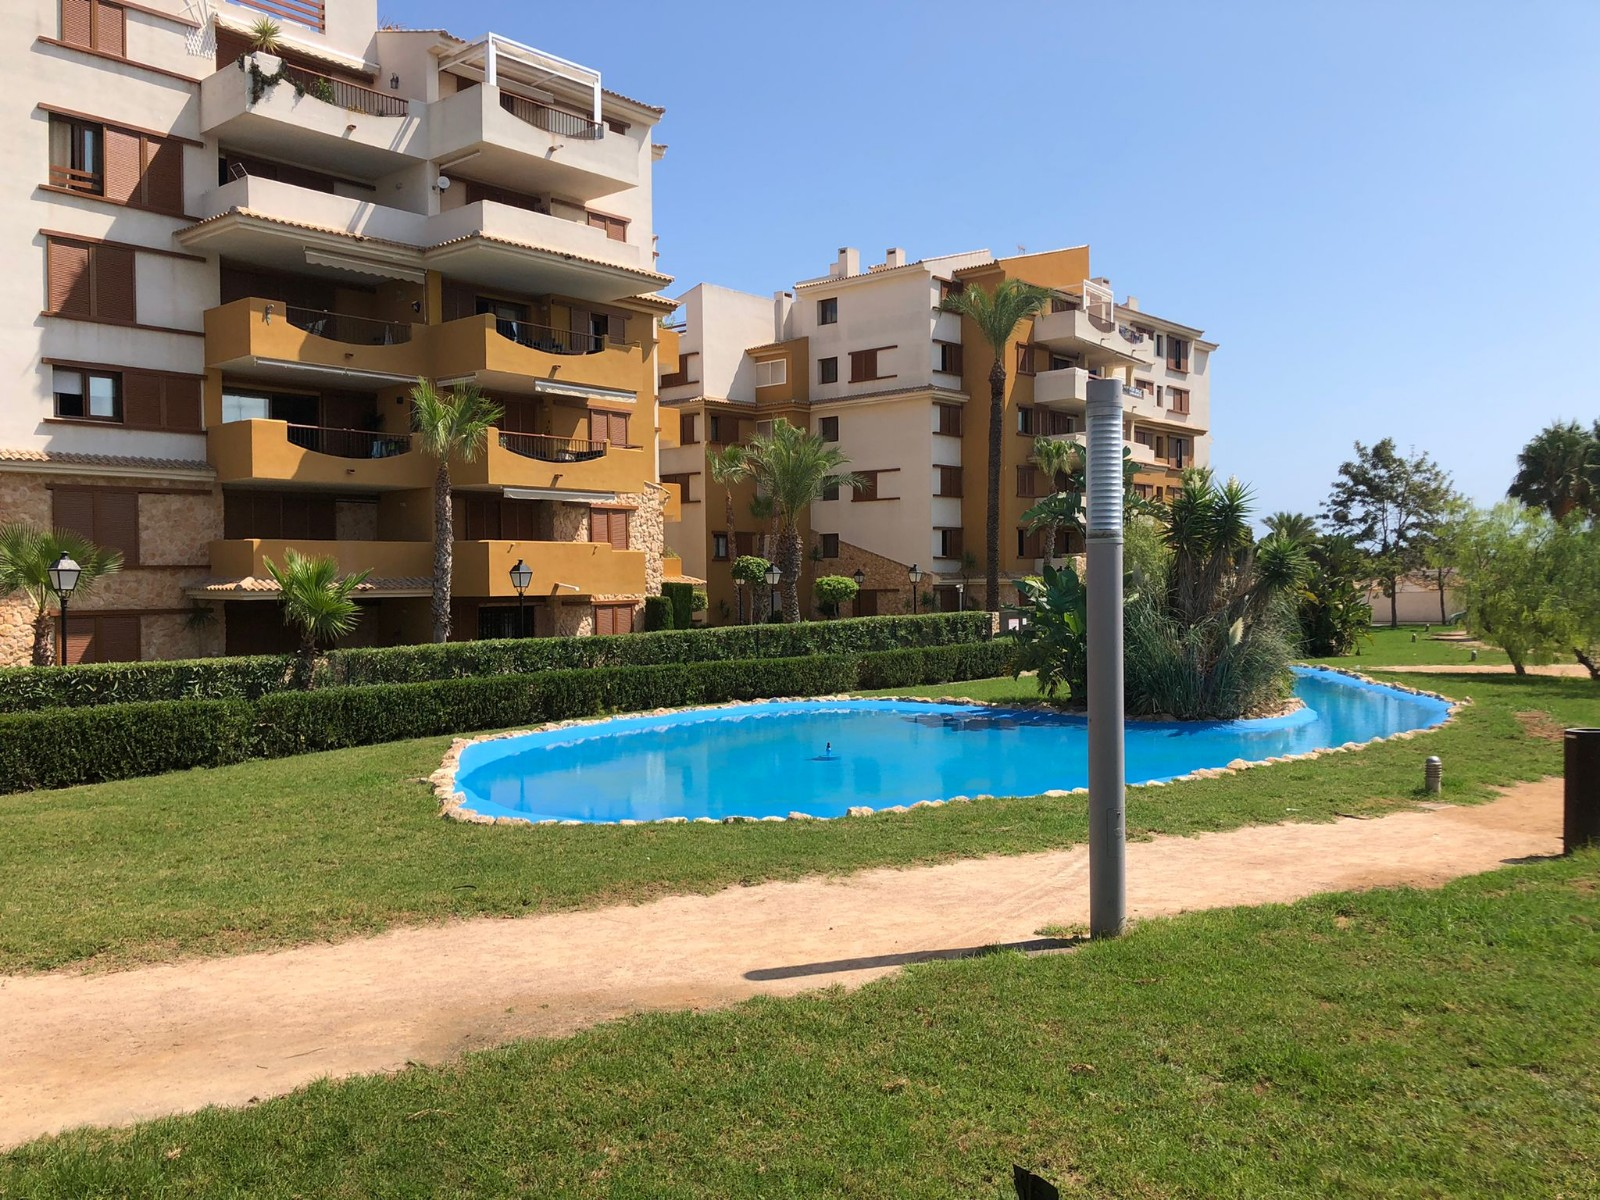 For Sale: Apartments in Orihuela Costa Beds: 2 Baths: 2 Price: 184,999€